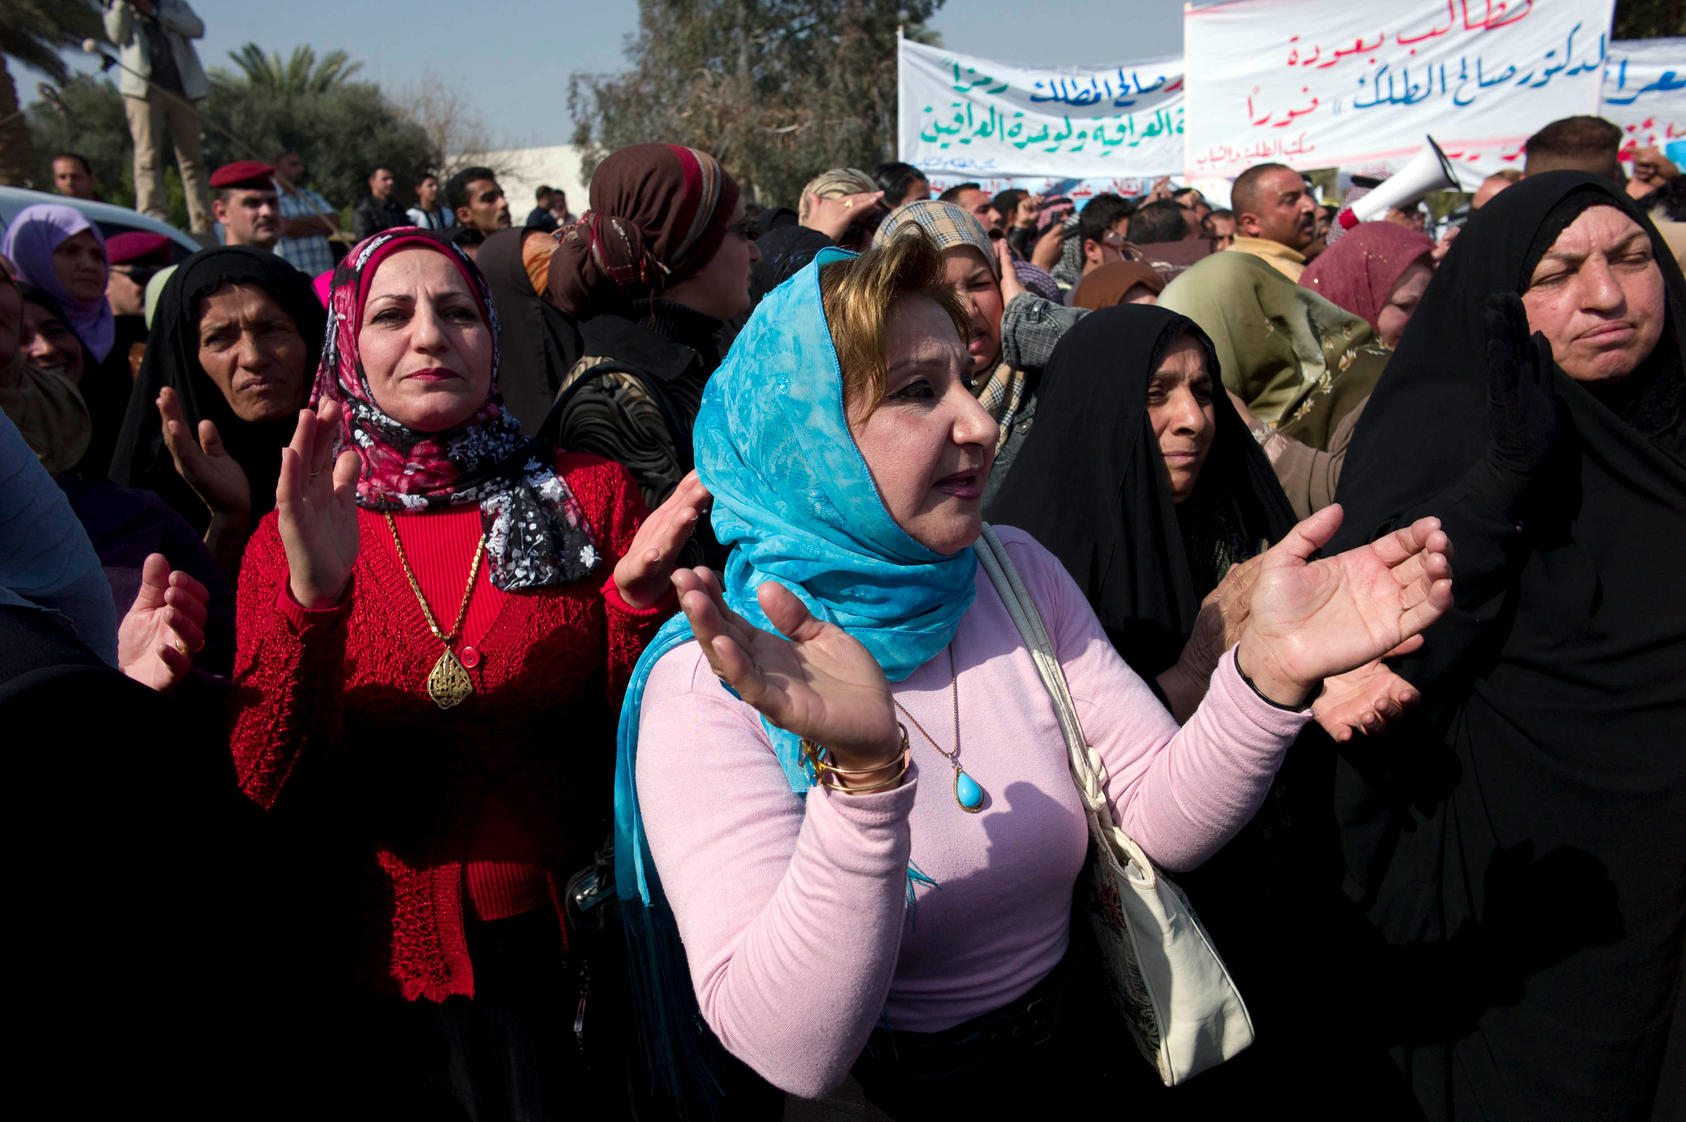 A group of women rally in Iraq